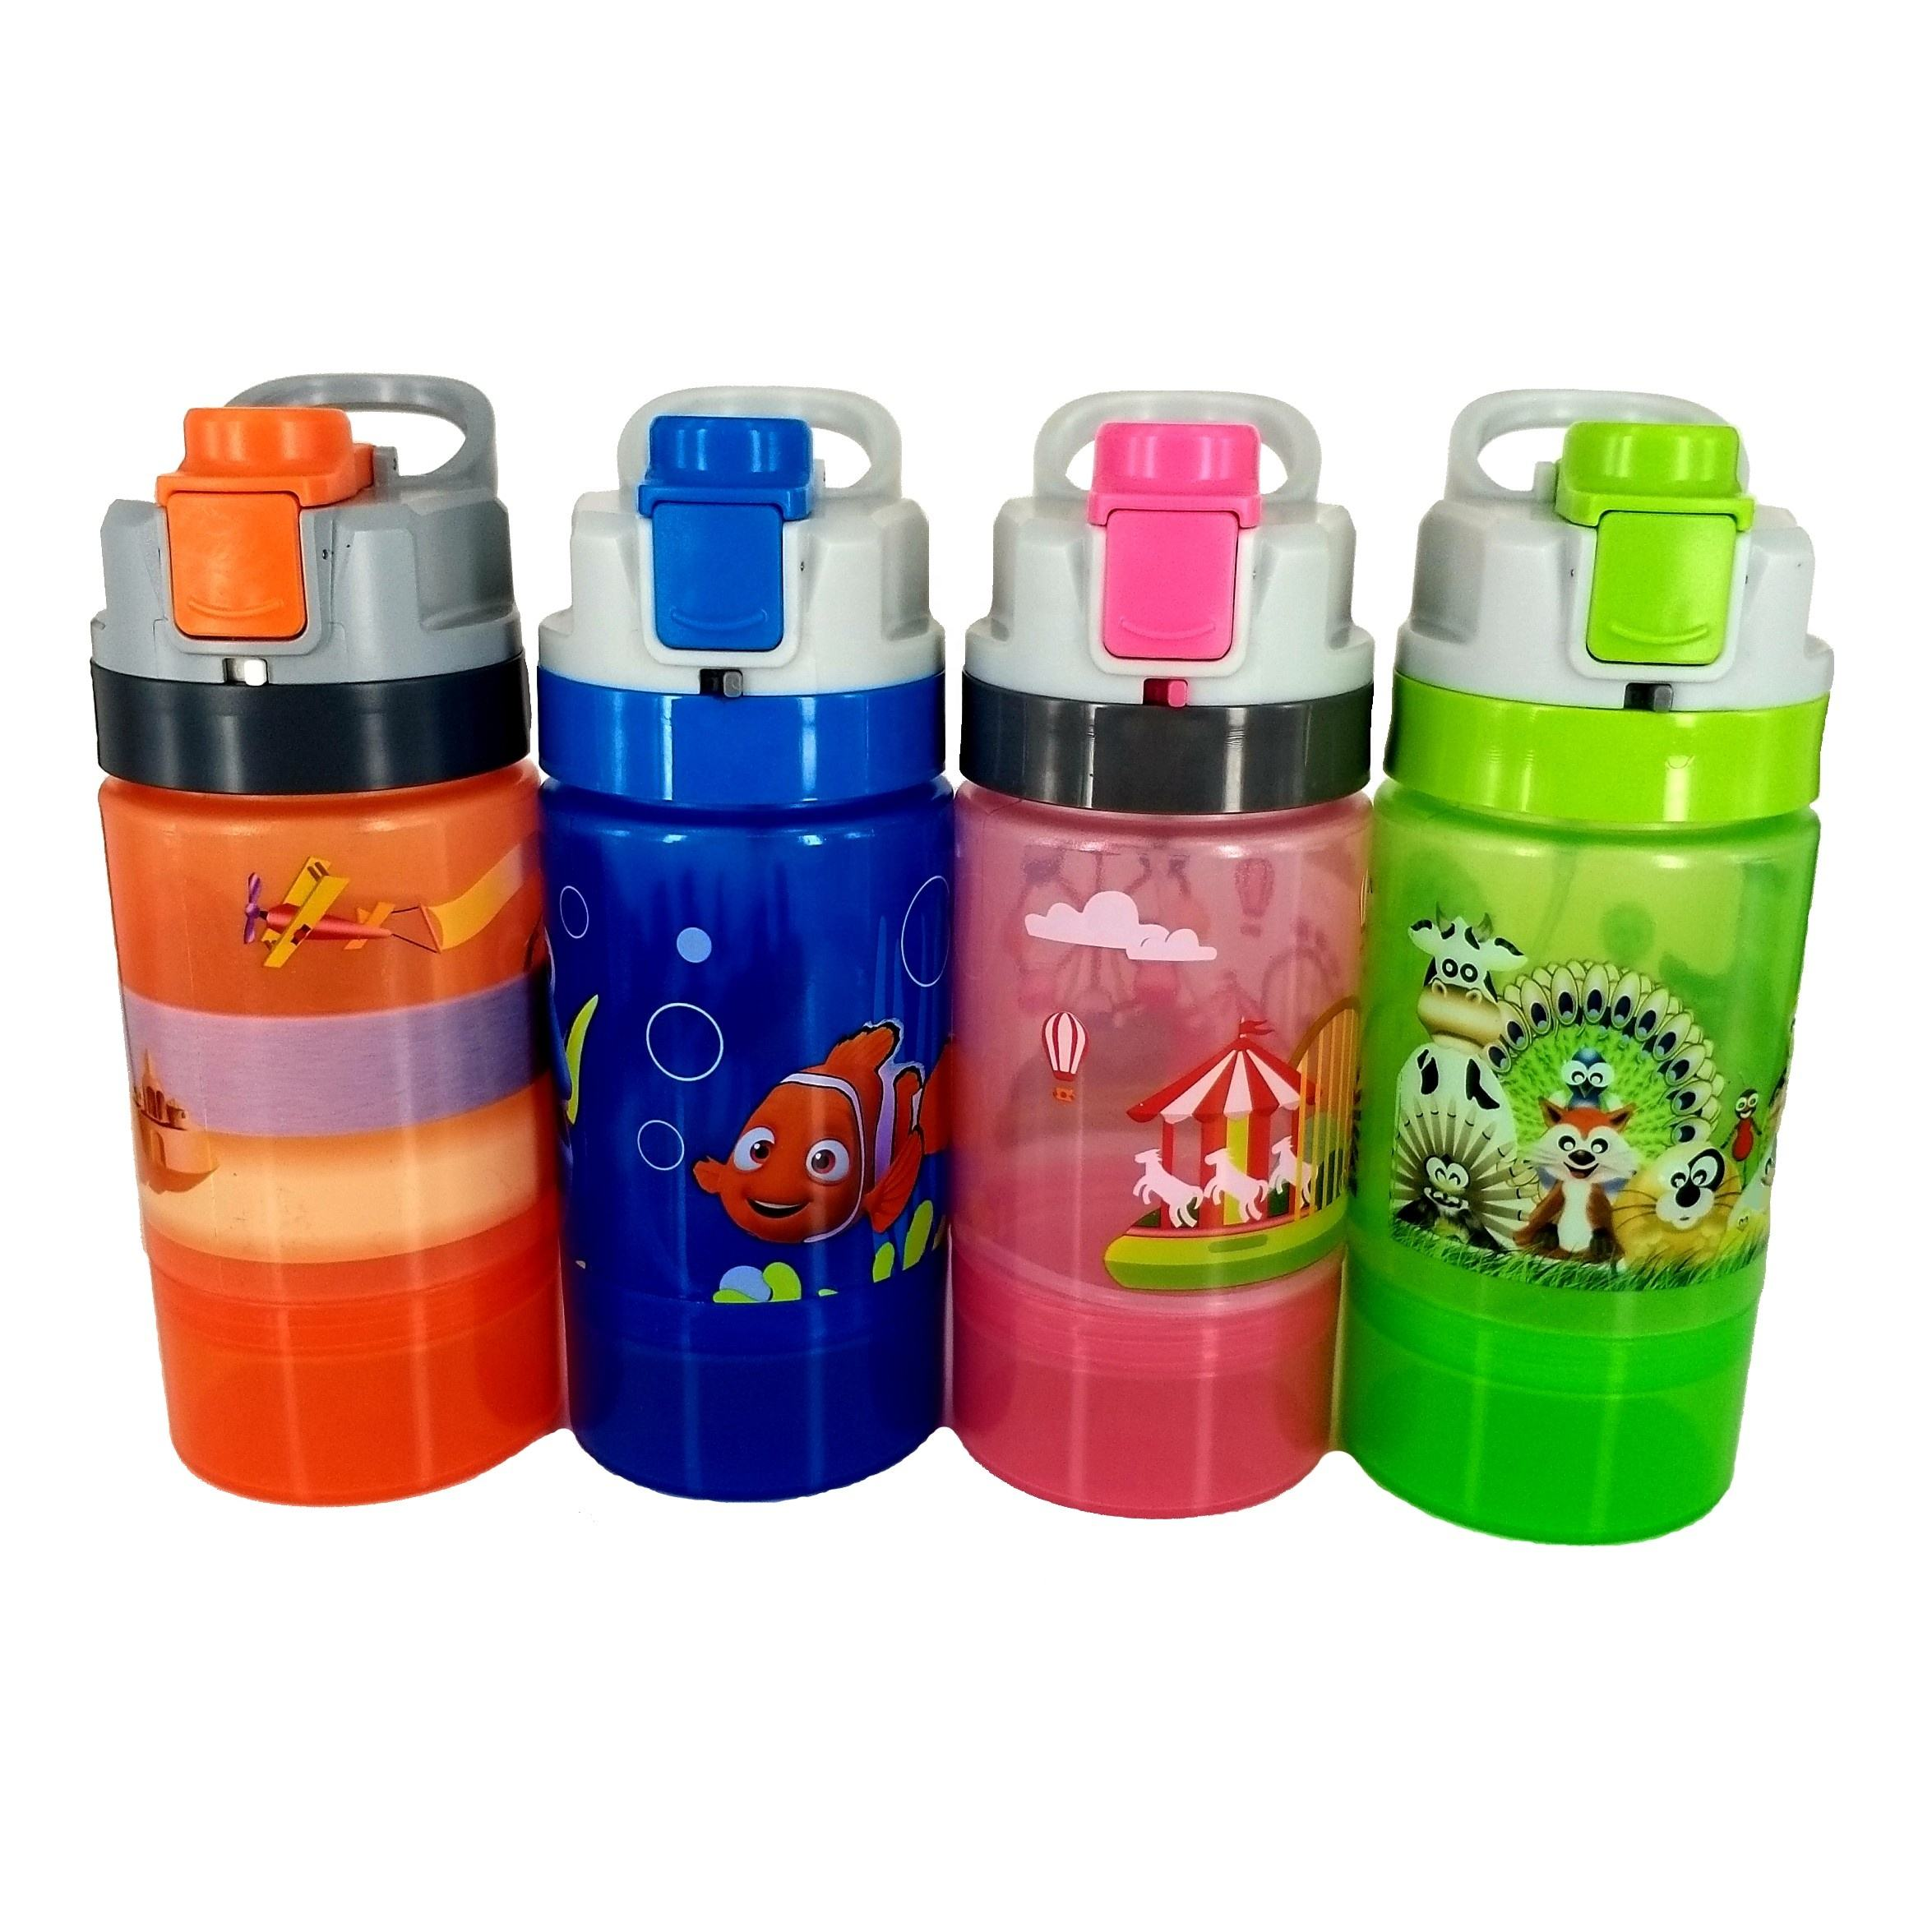 Misting and Drinking sporty water bottle